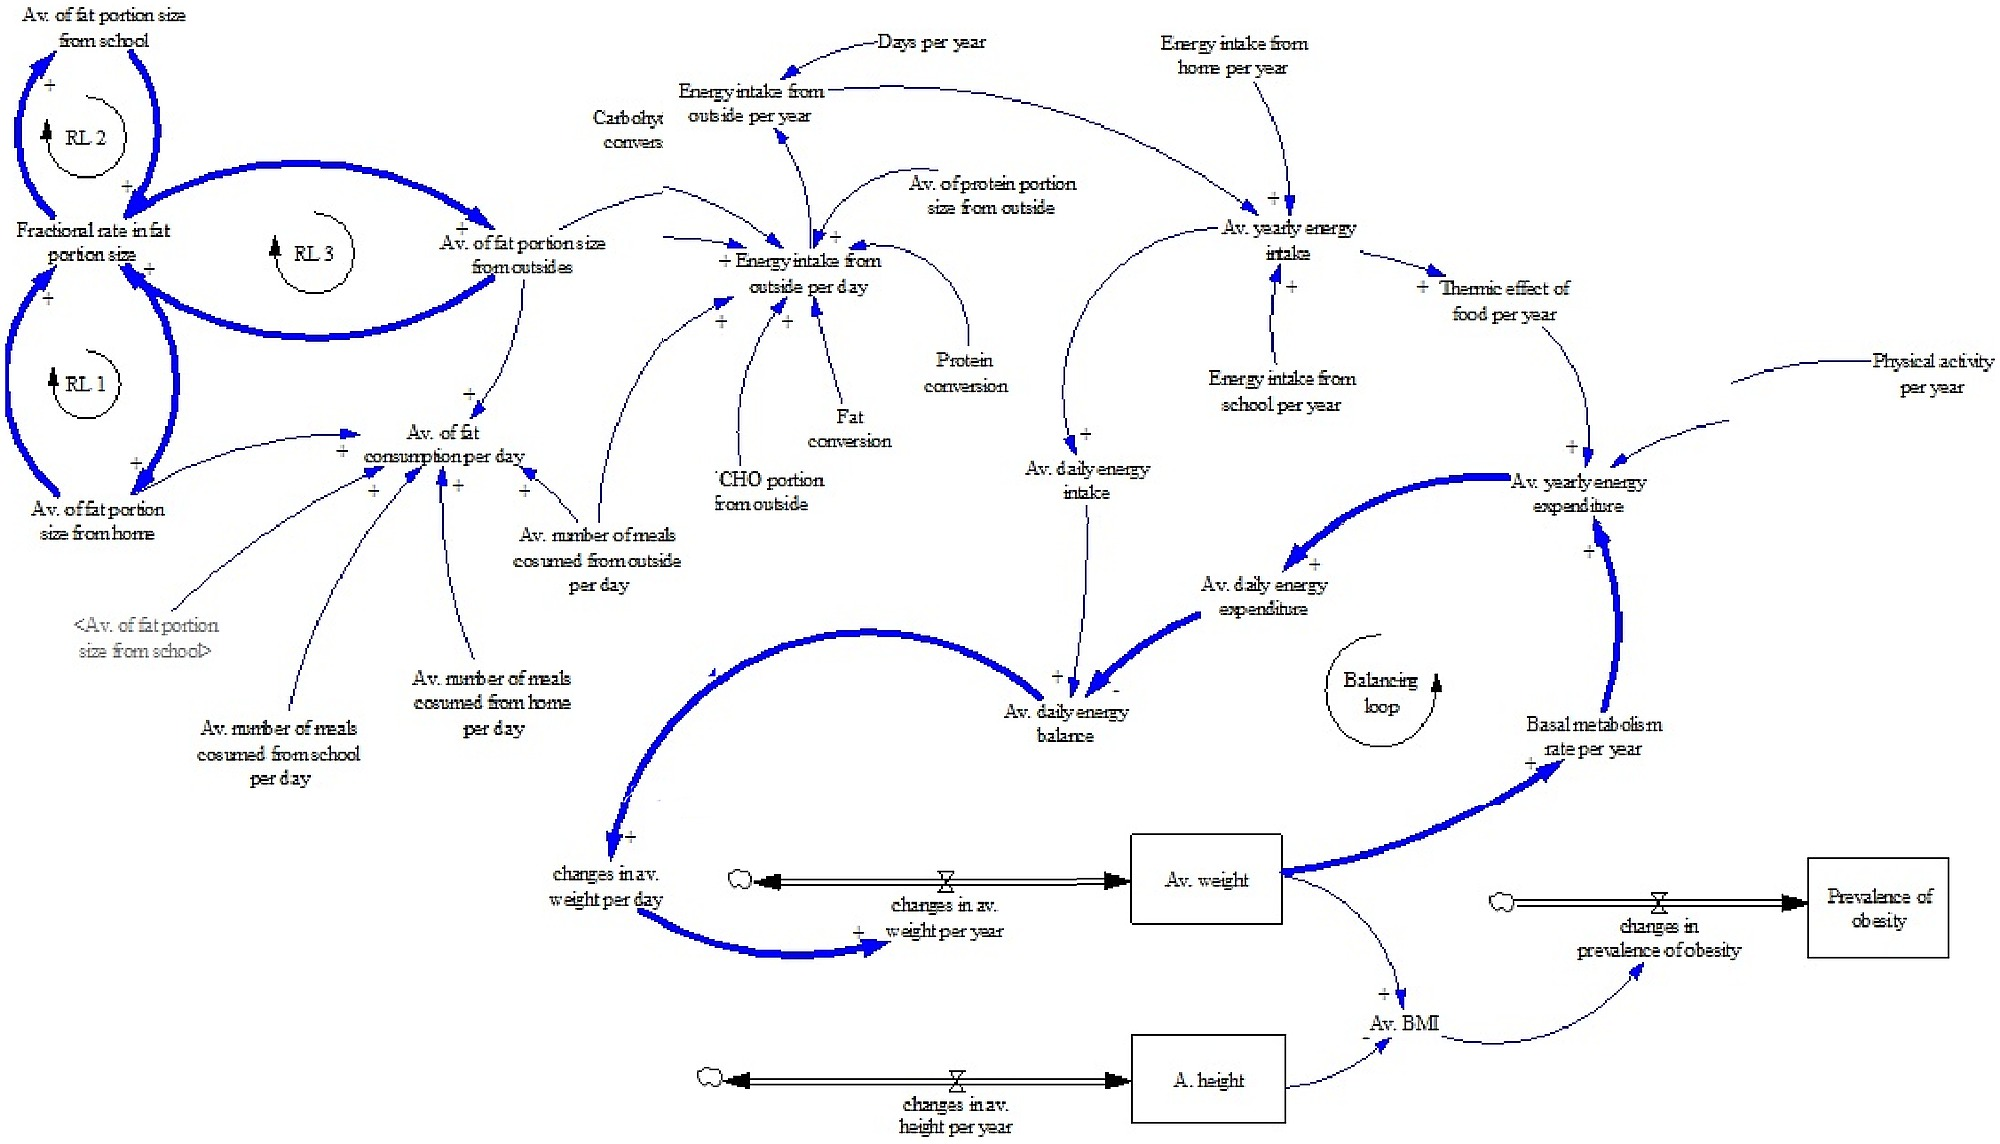 causal diagram Causal loop diagrams map the causal relationships between pairs of elements within a system and identify feedback loops these loops can either be reinforcing (vicious cycle) or balancing (goal-seeking) and complex interactions between loops can lead to unintended consequences the arrows in.